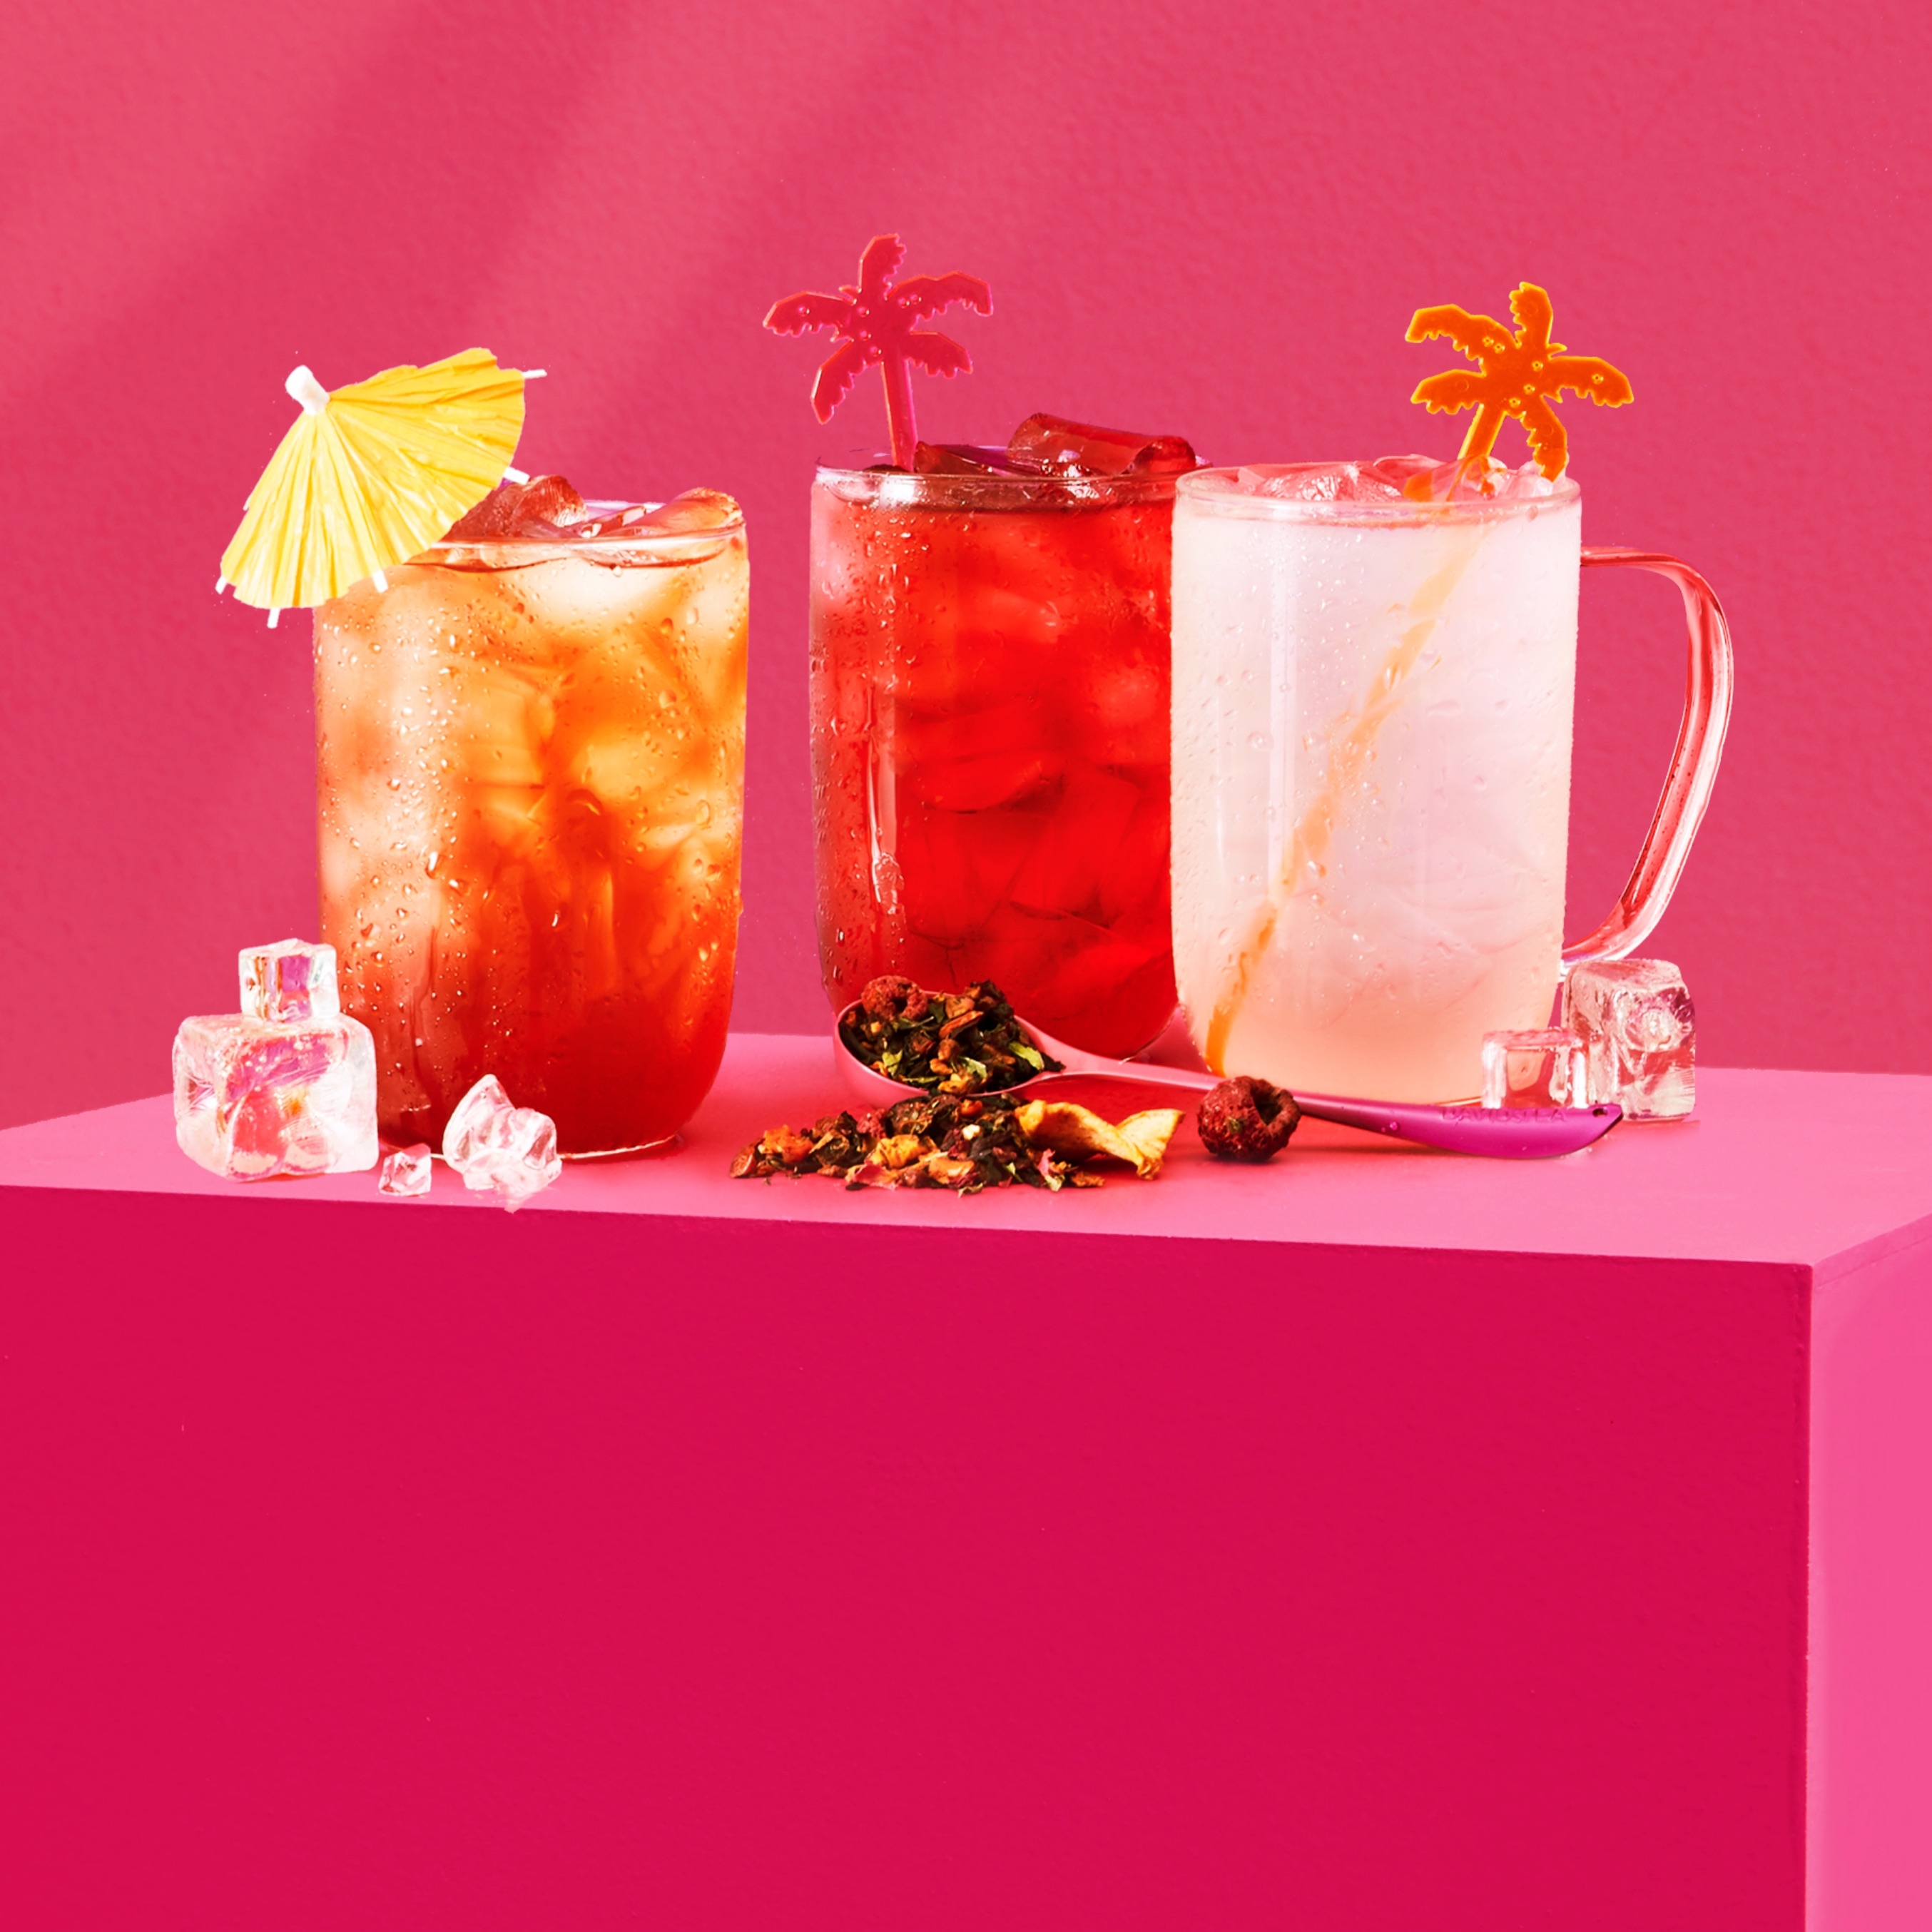 Stay refreshed all year long: now's your chance to scoop up our summer iced teas at 30% off.